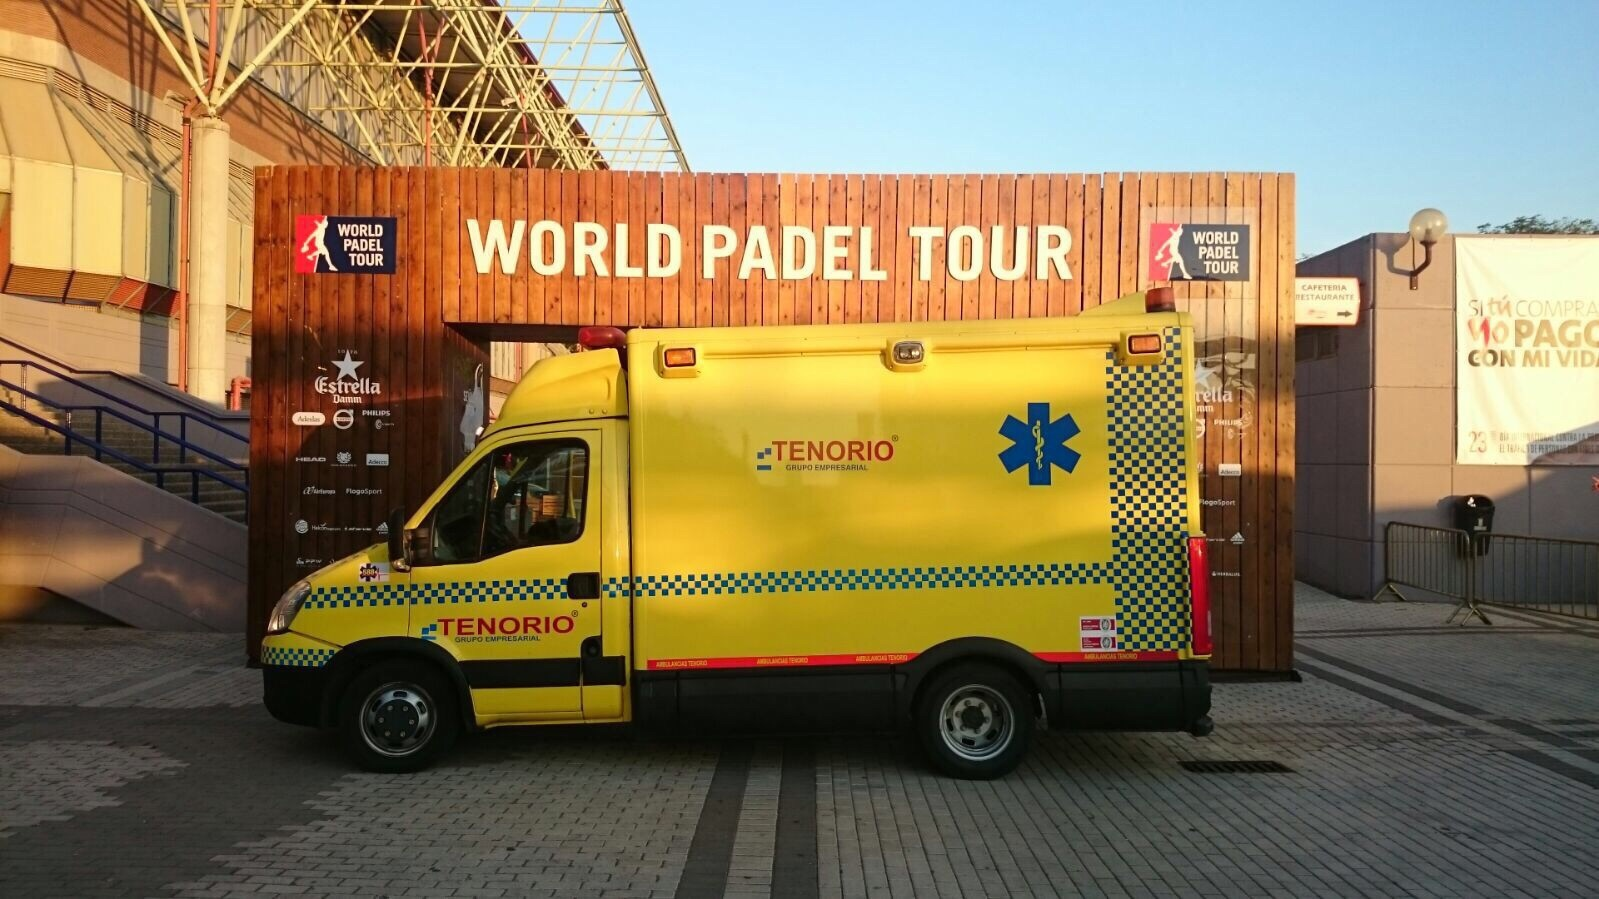 Ambulancias Tenorio e Hijos S.L. colabora con el World Padel Tour